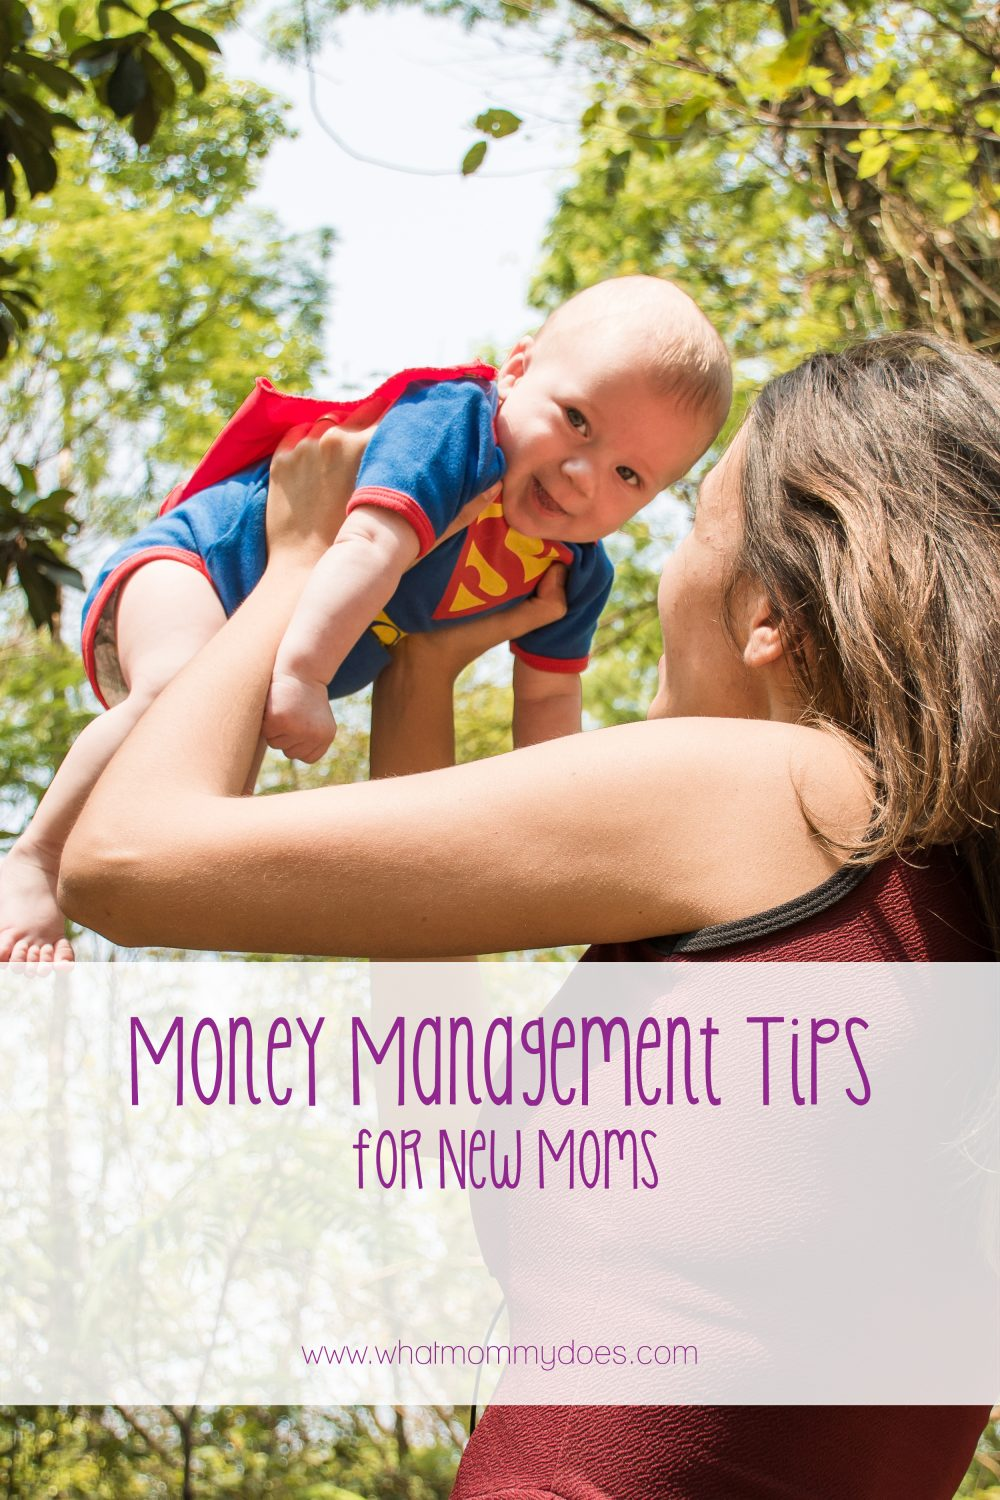 This should be REQUIRED READING for every new mom. When you have a baby, your financial world gets complicated. There are so many things you need to know! You have to save more money, make more money, plan for the future much more intentionally than before. Your new little baby depends on you! Learn how to manage financially from this girl's blog - she's a stay at home mom CPA so she knows what she's talking about!   saving money ideas, making money ideas, stay at home mom tips